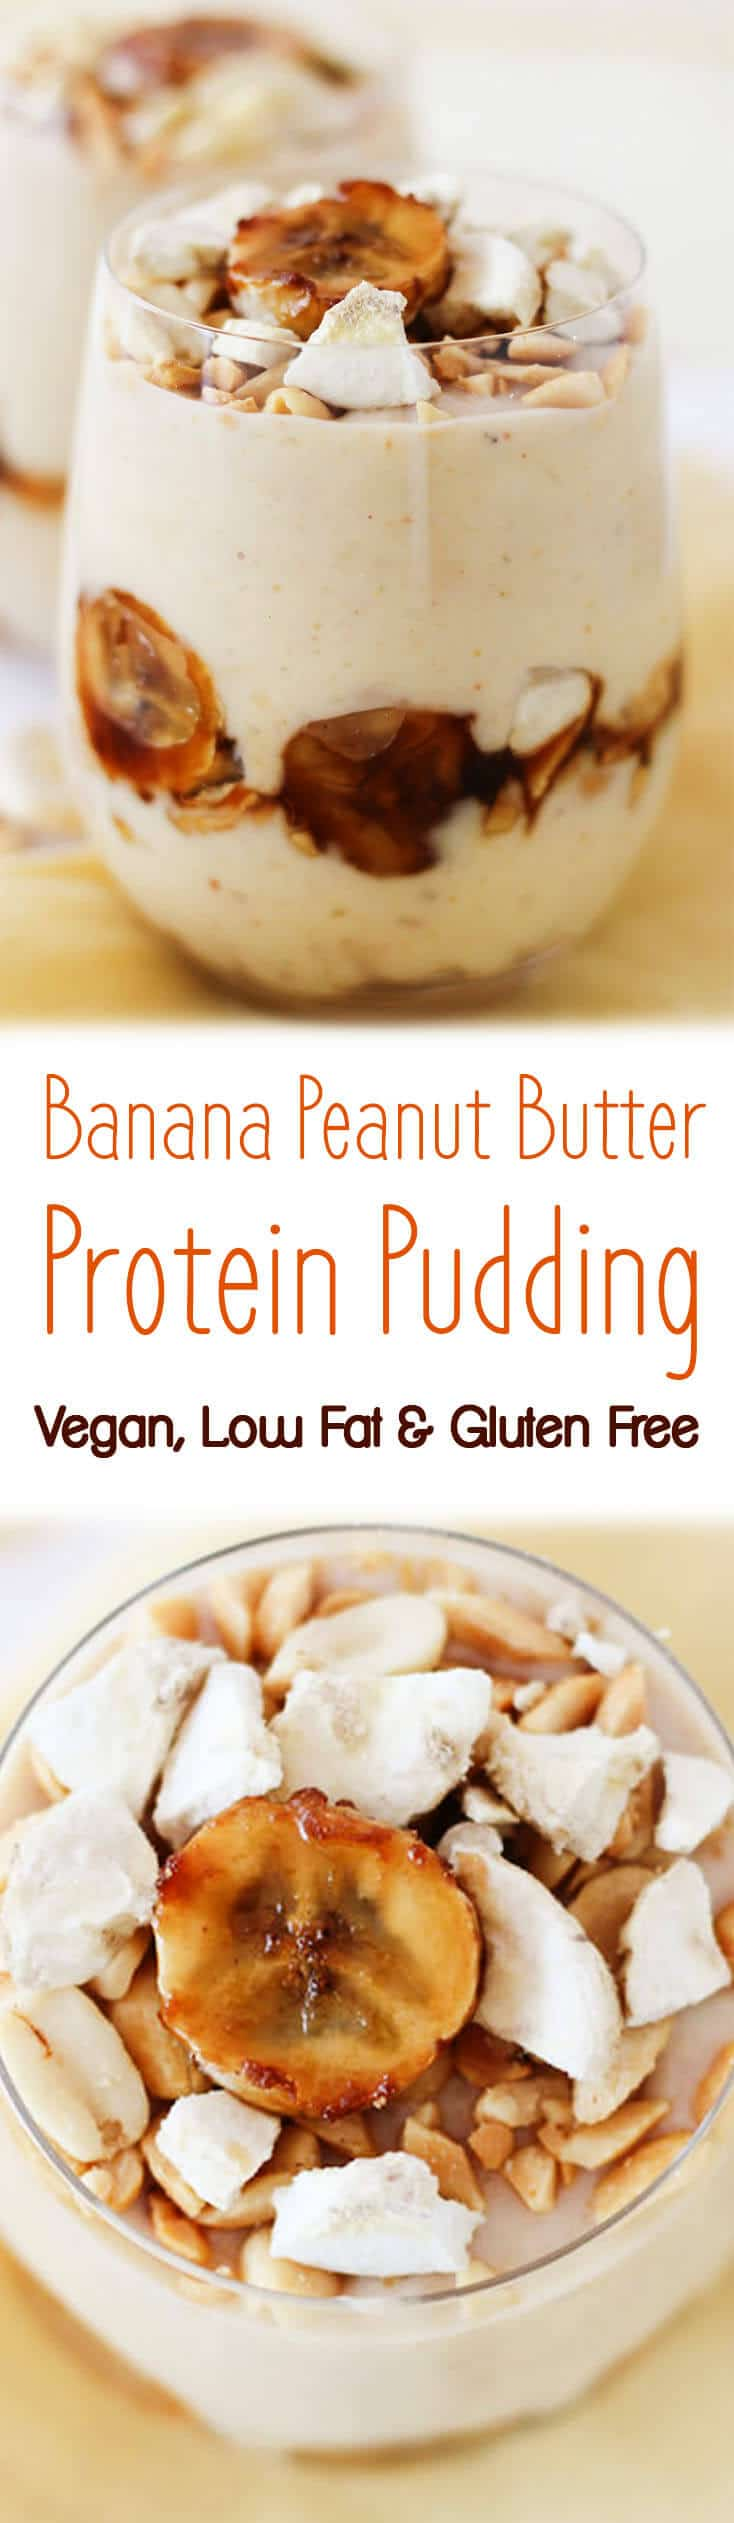 This banana peanut butter protein pudding is vegan, low fat and gluten free- perfect for getting your PB fix!